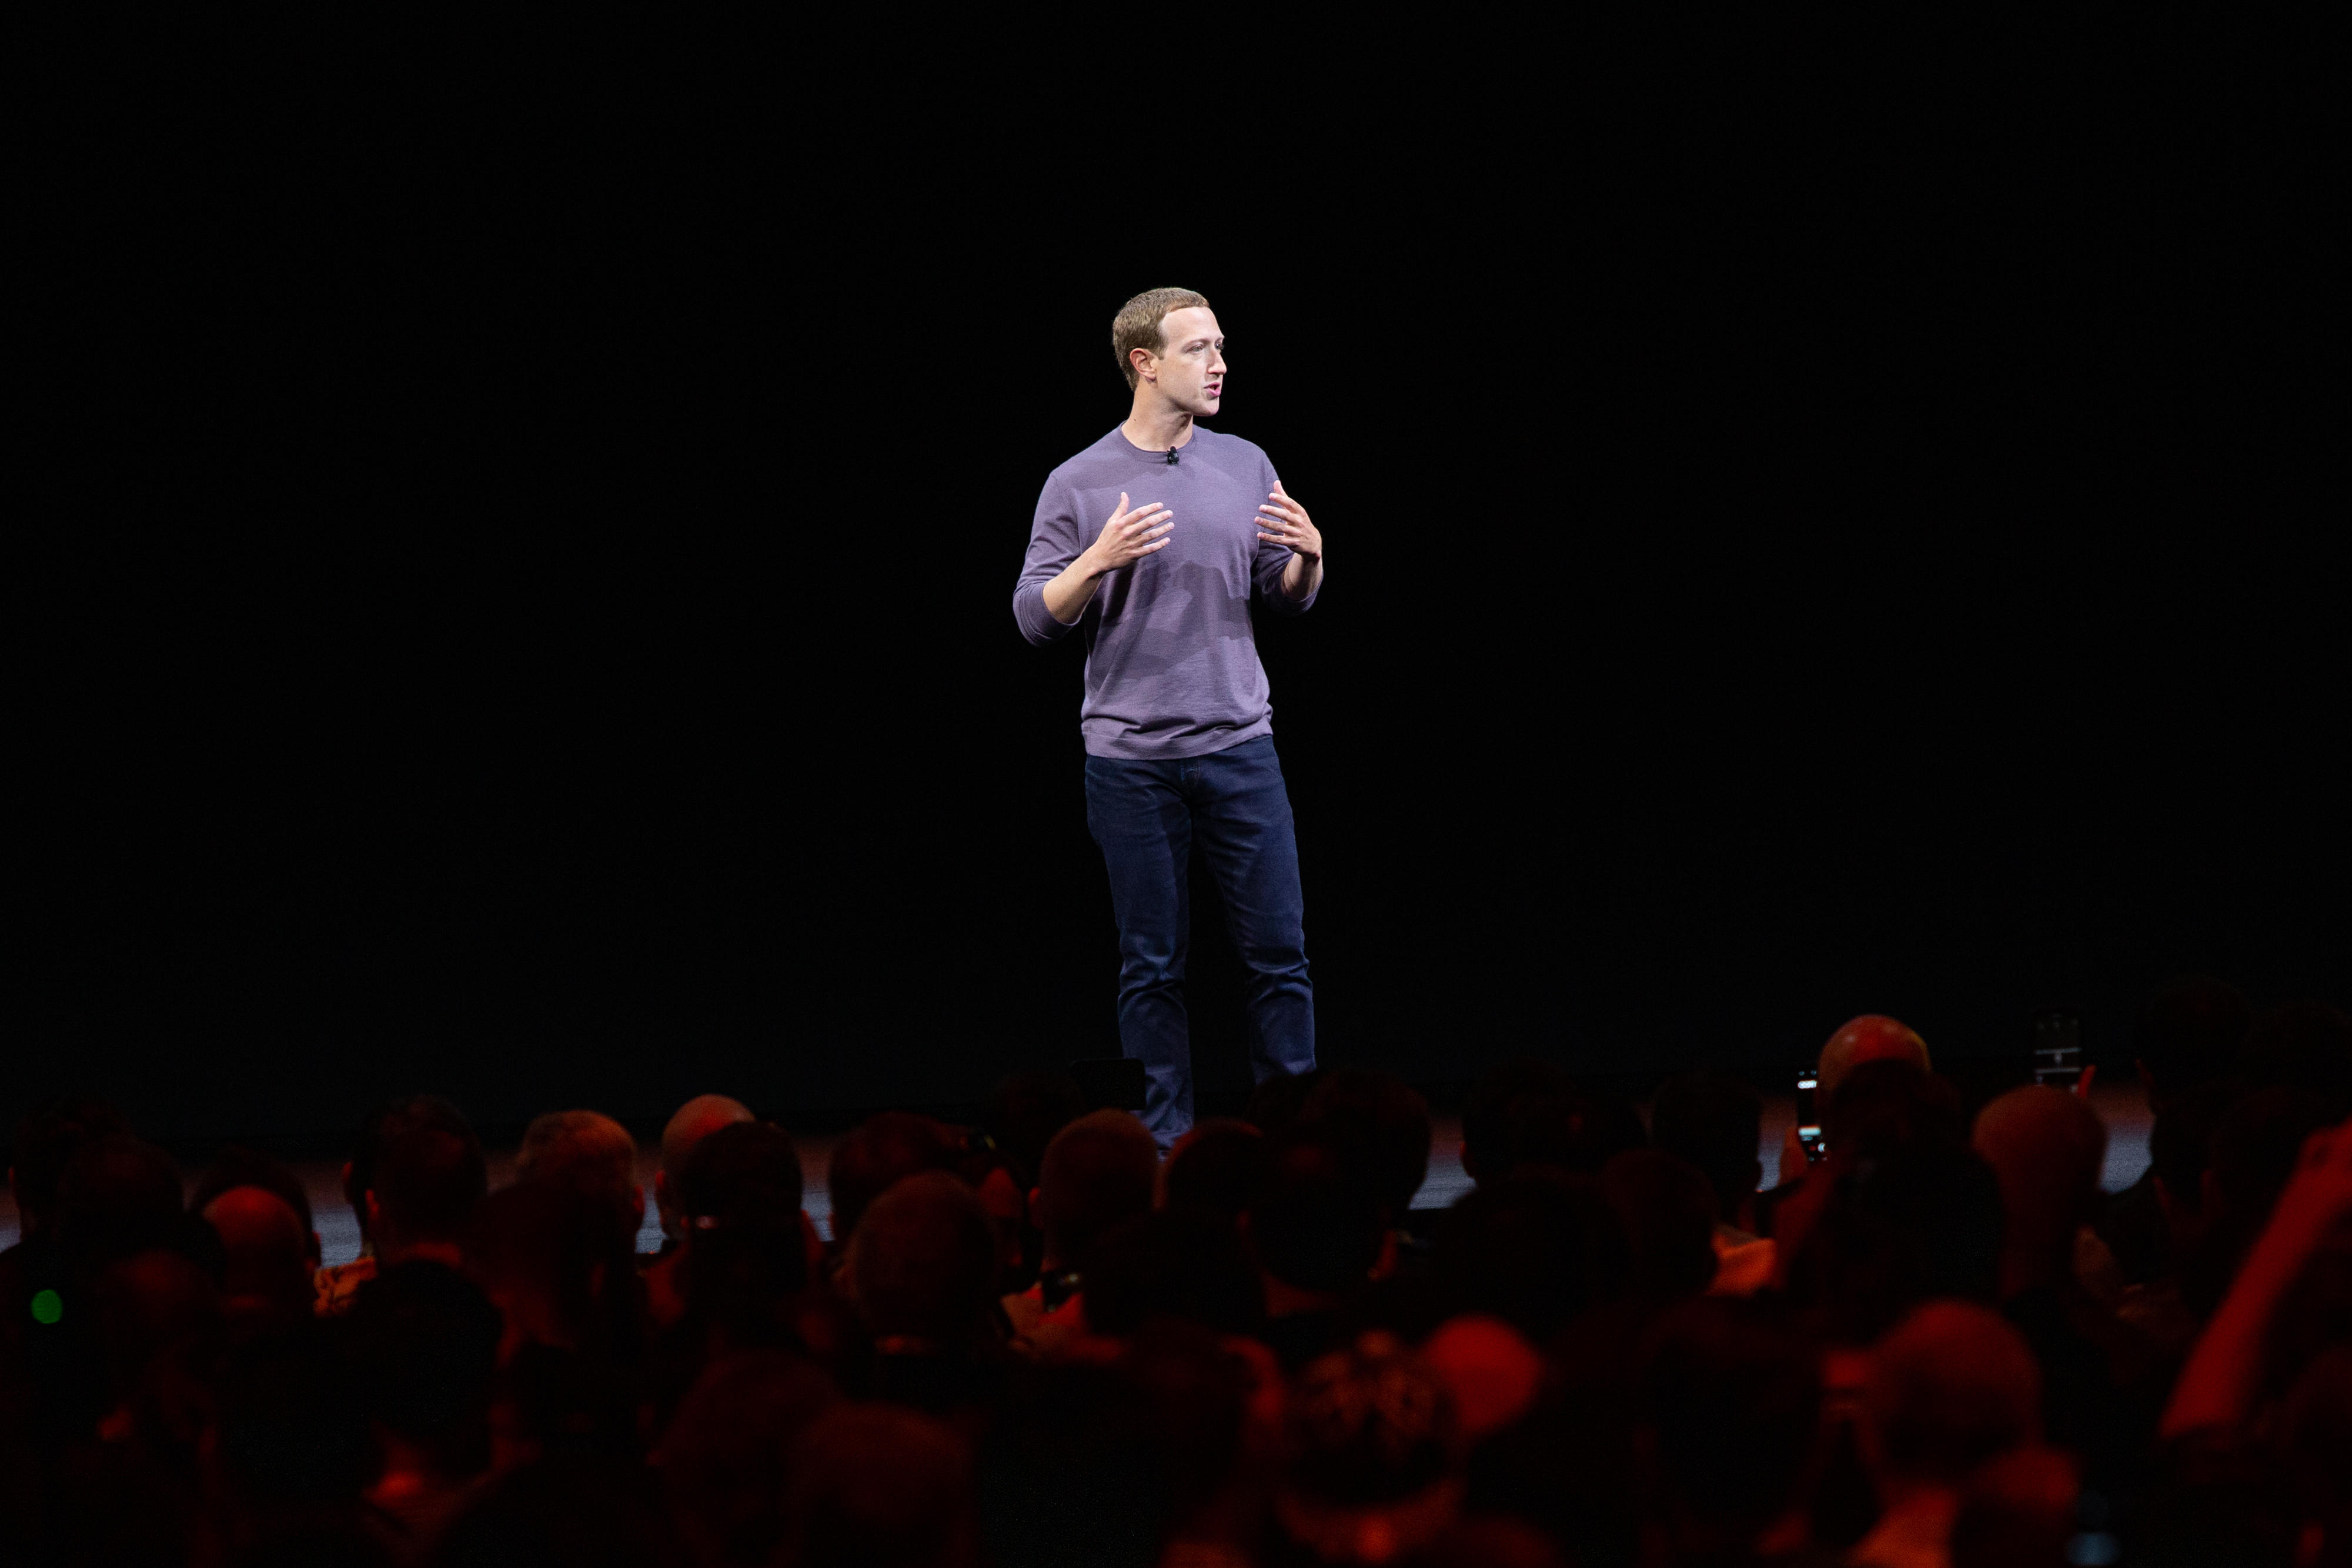 Mark Zuckerberg on stage at Oculus Connect 2019